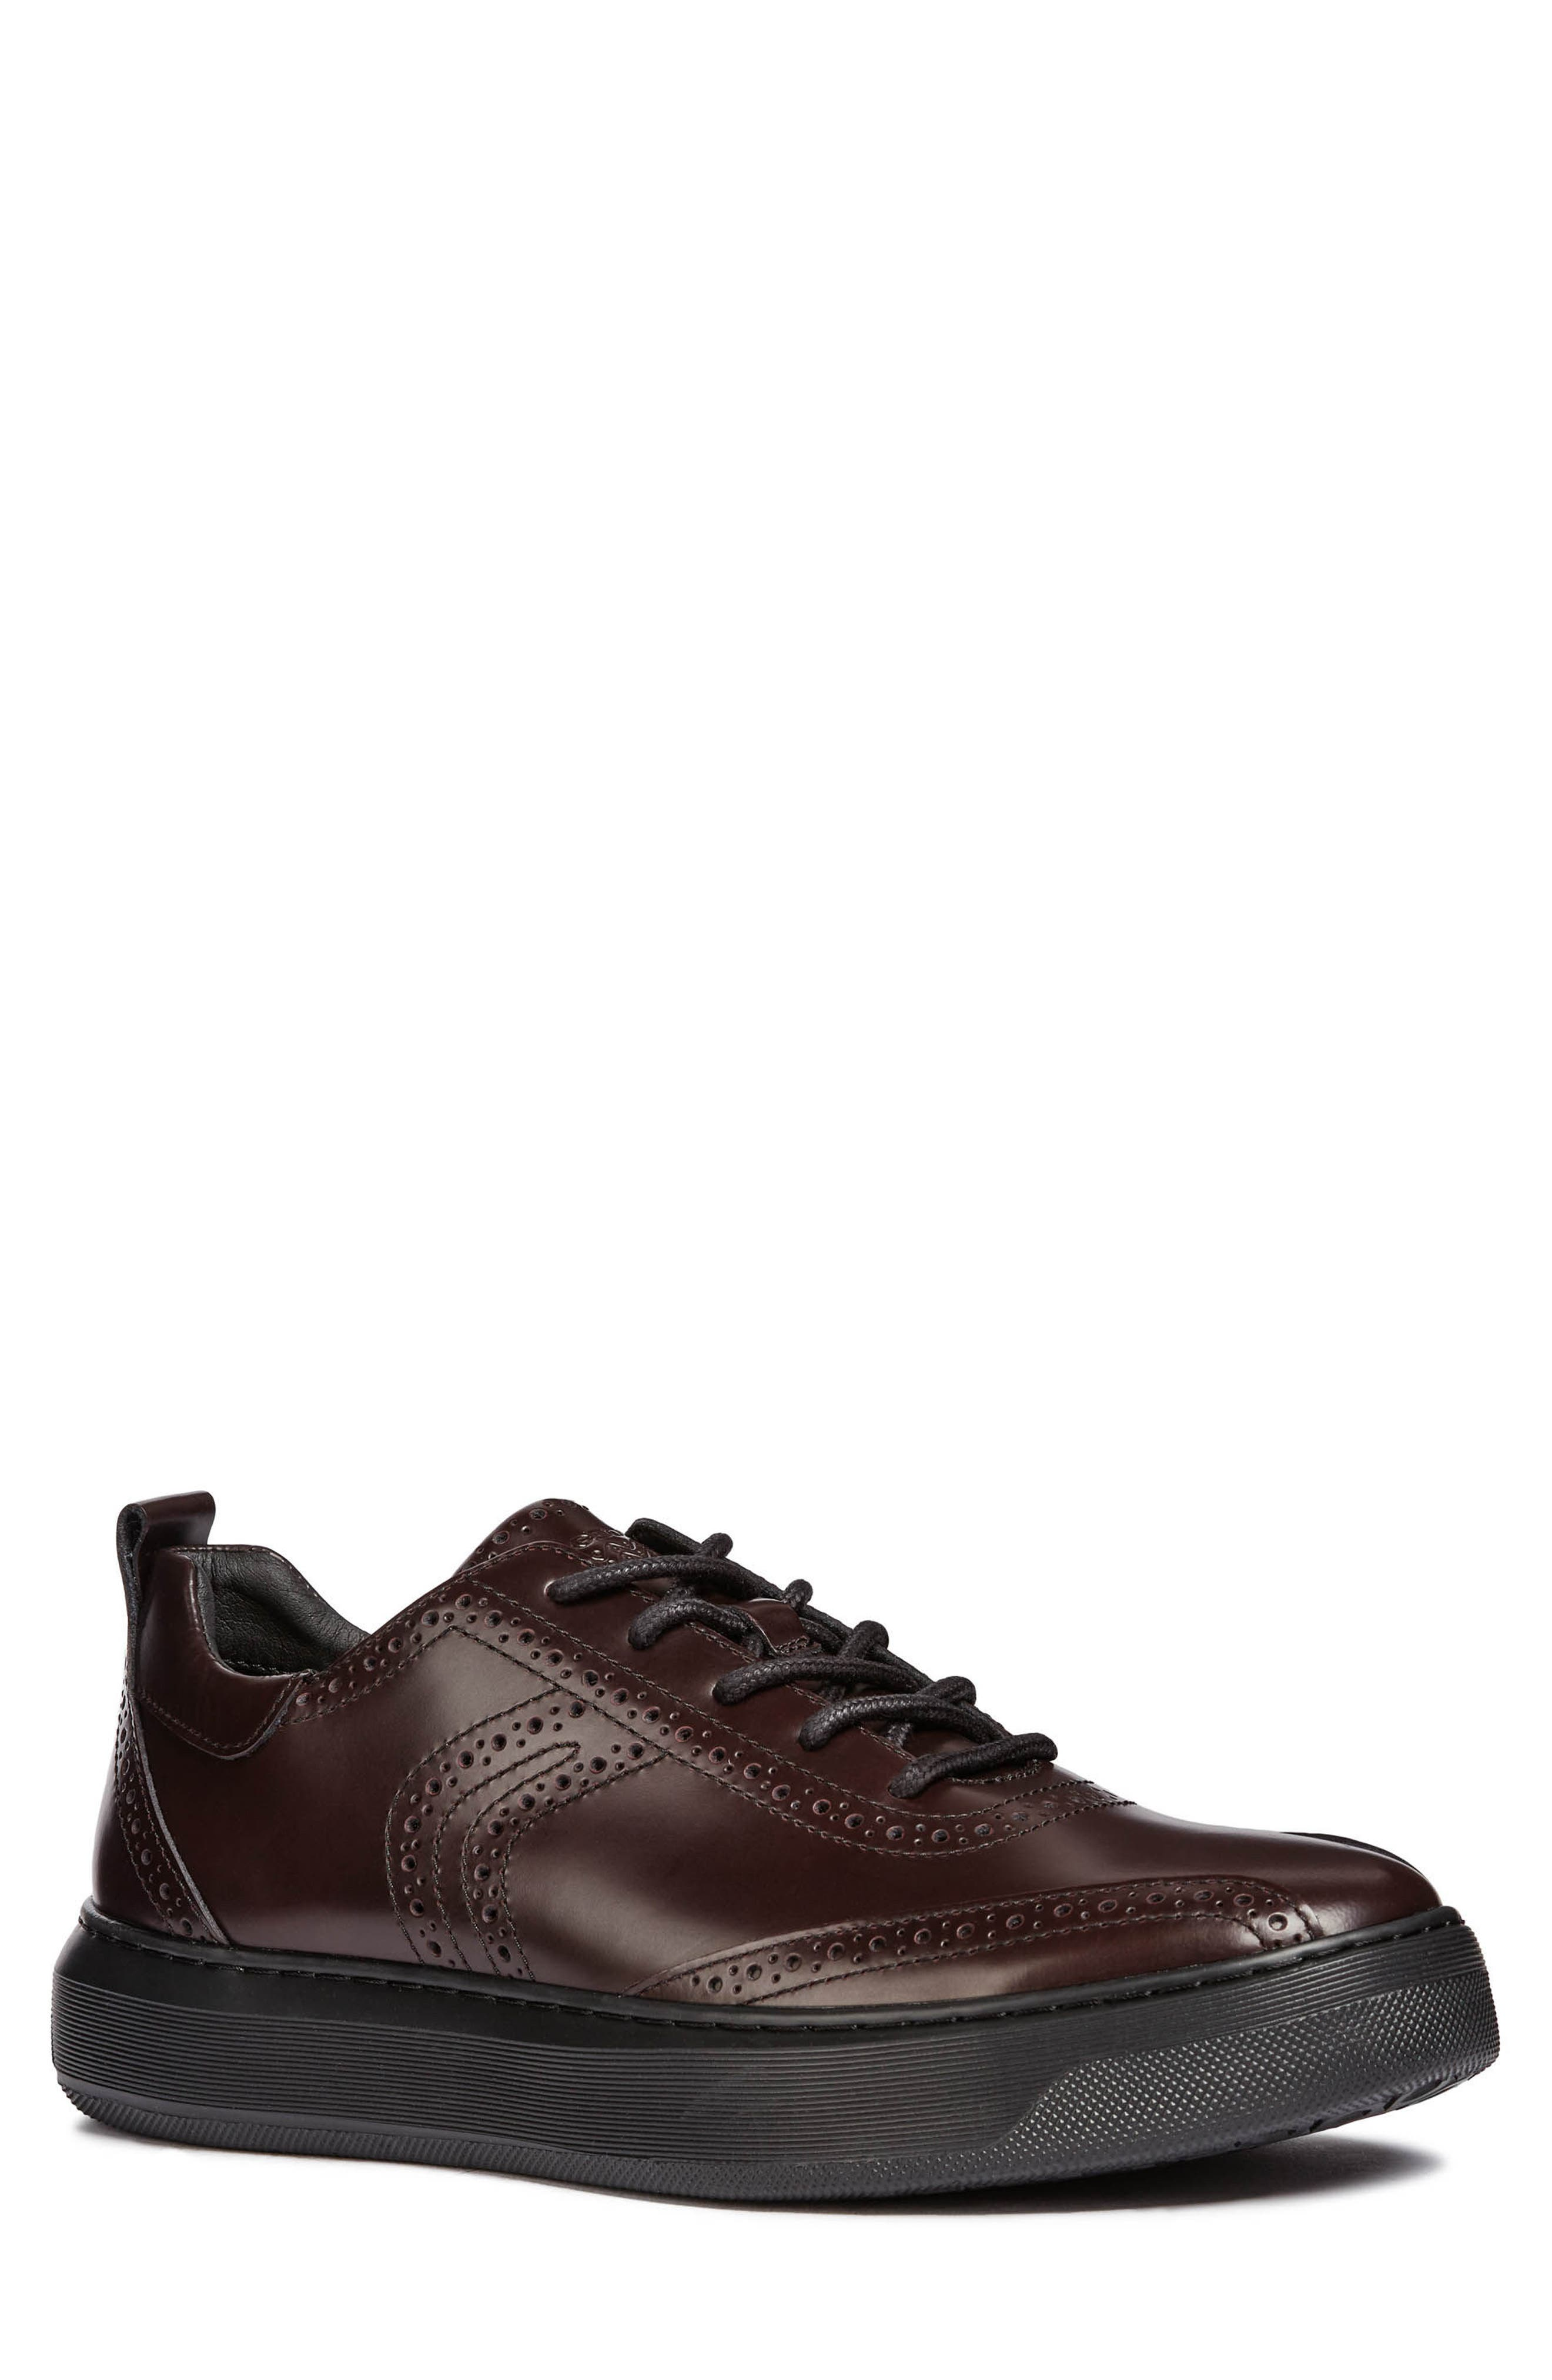 Deiven 10 Brogued Low Top Sneaker,                         Main,                         color, DARK BURGUNDY LEATHER